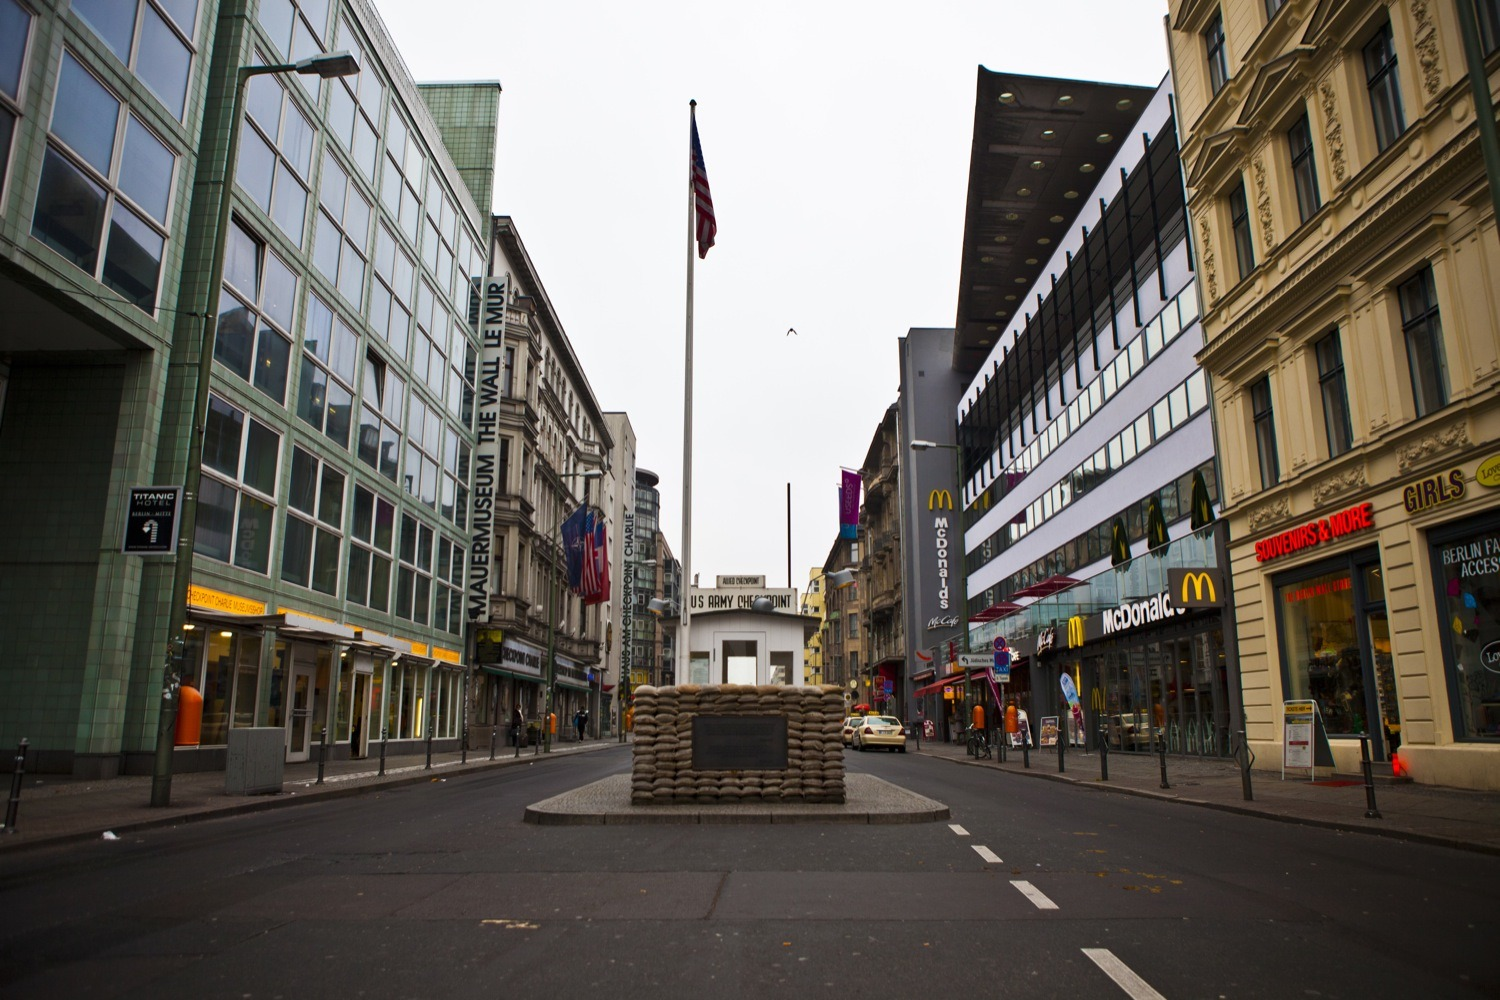 Berlin Wall itinerary